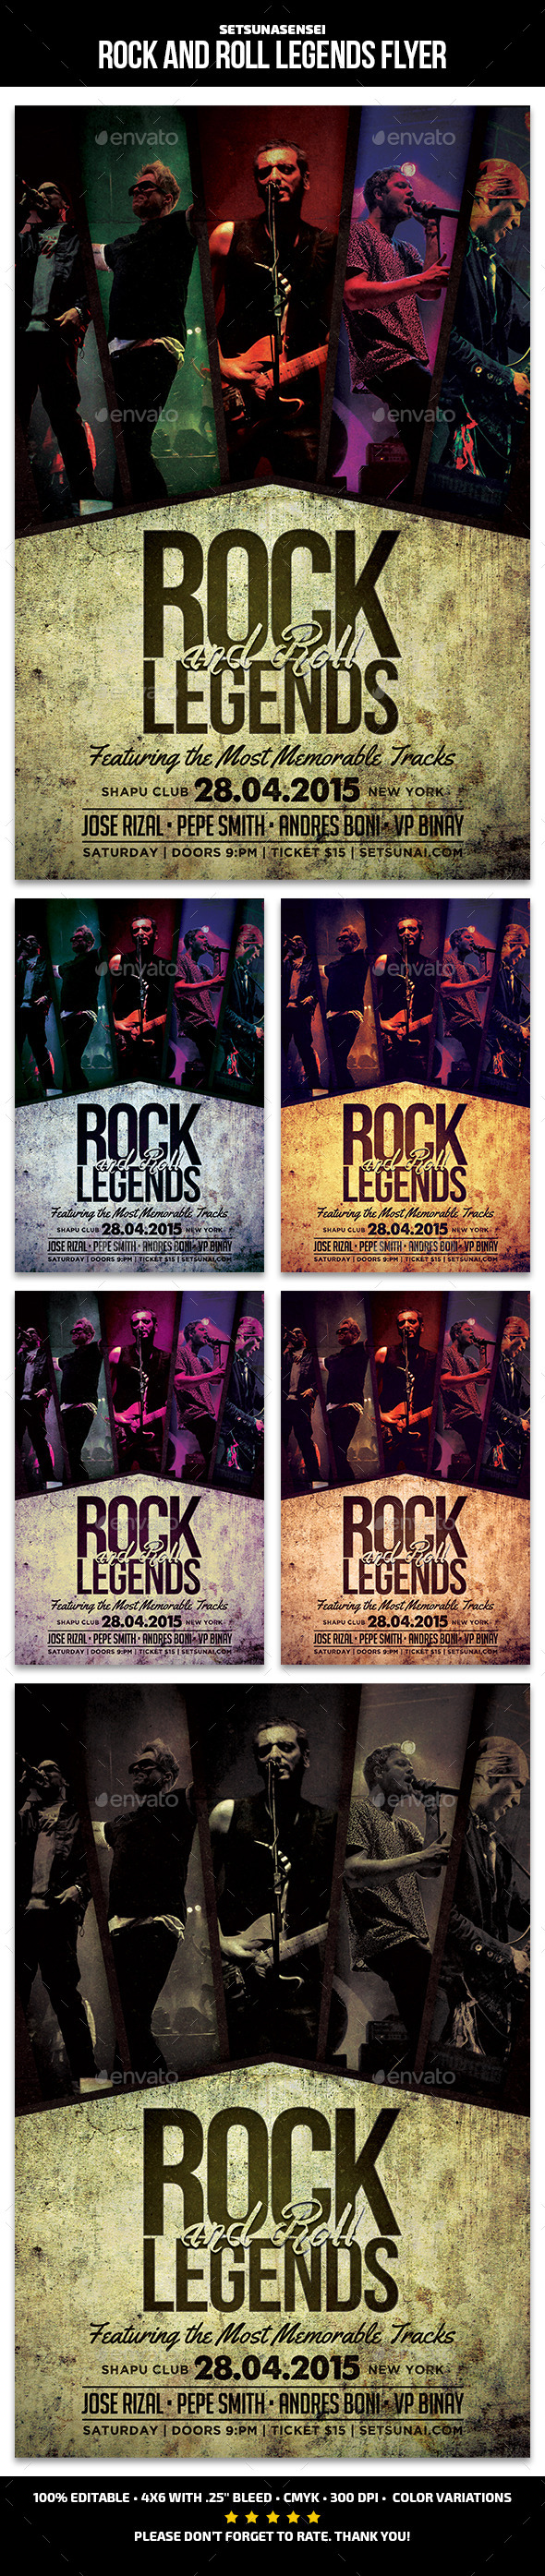 Rock and Roll Legends Flyer - Concerts Events